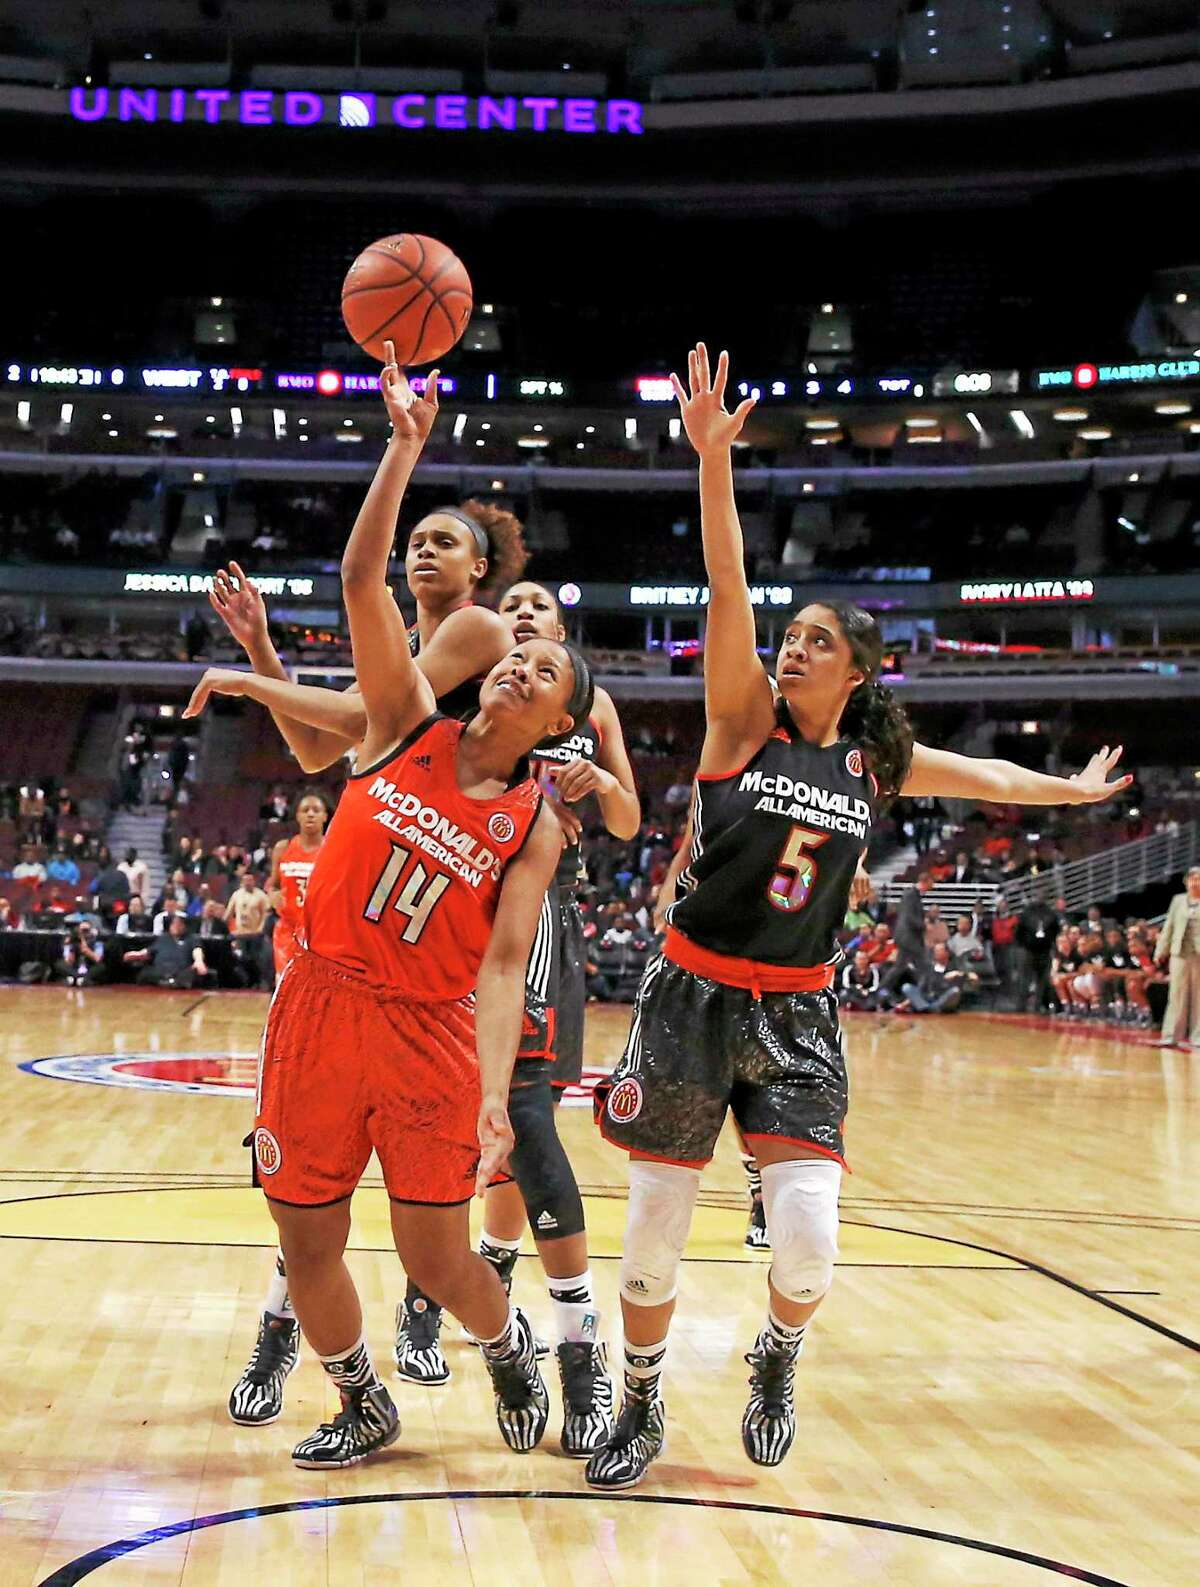 Sadie Edwards, left, gets her shot off between Brianna Turner, background, and Recee Caldwell during the McDonald's All-American game in April in Chicago.